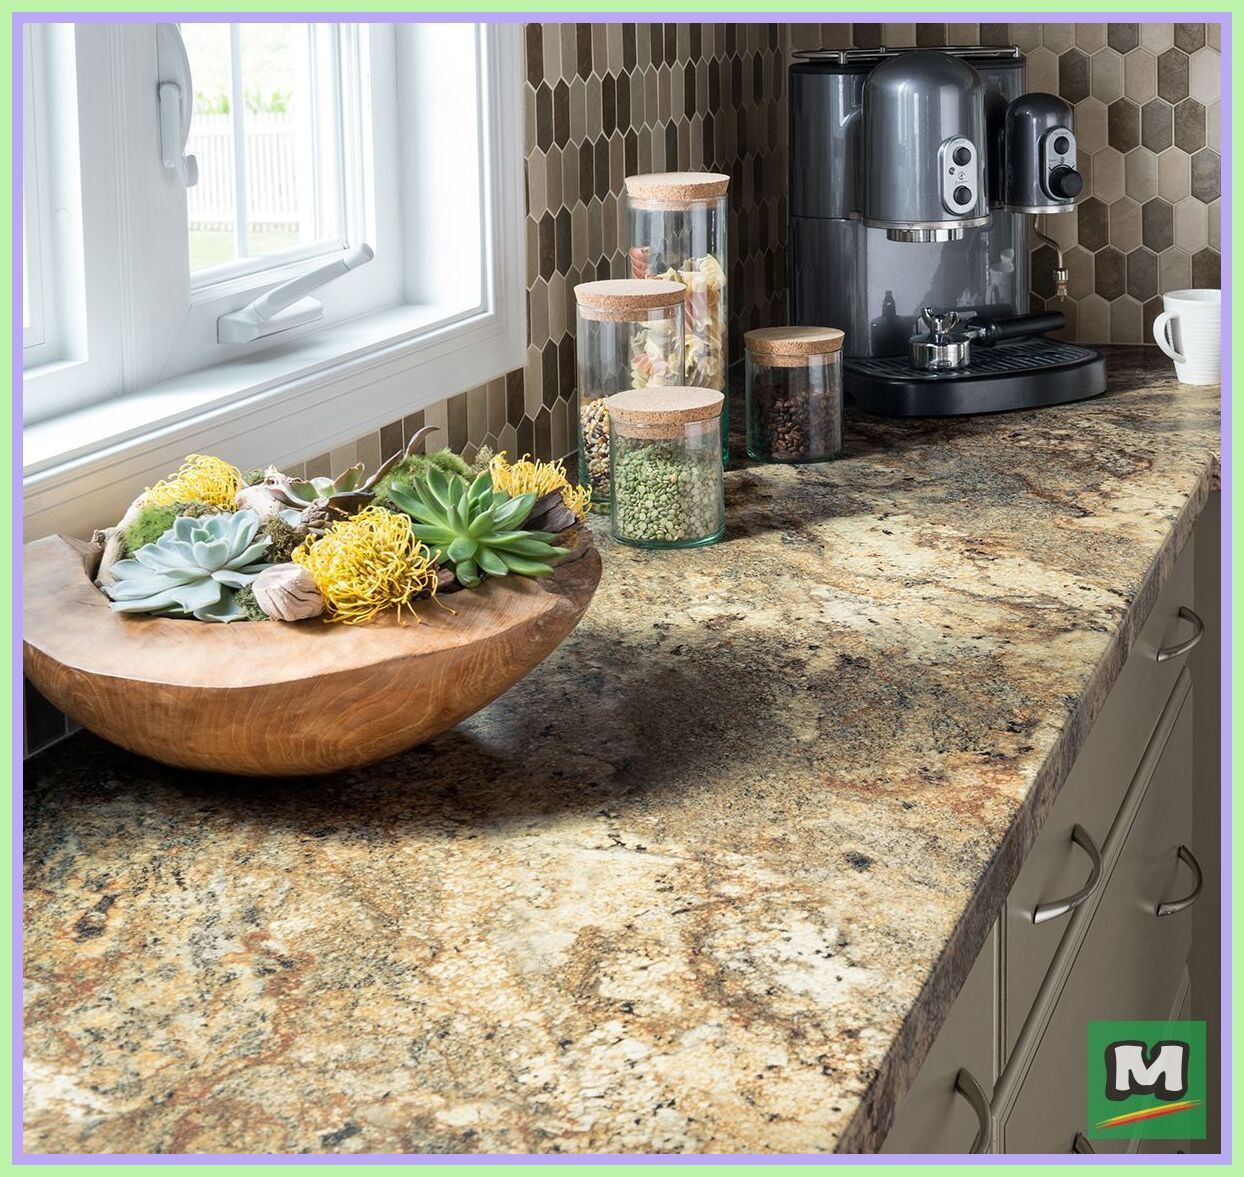 61 Reference Of Formica Countertops Menards Laminate Countertops Brown Laminate Formica Countertops